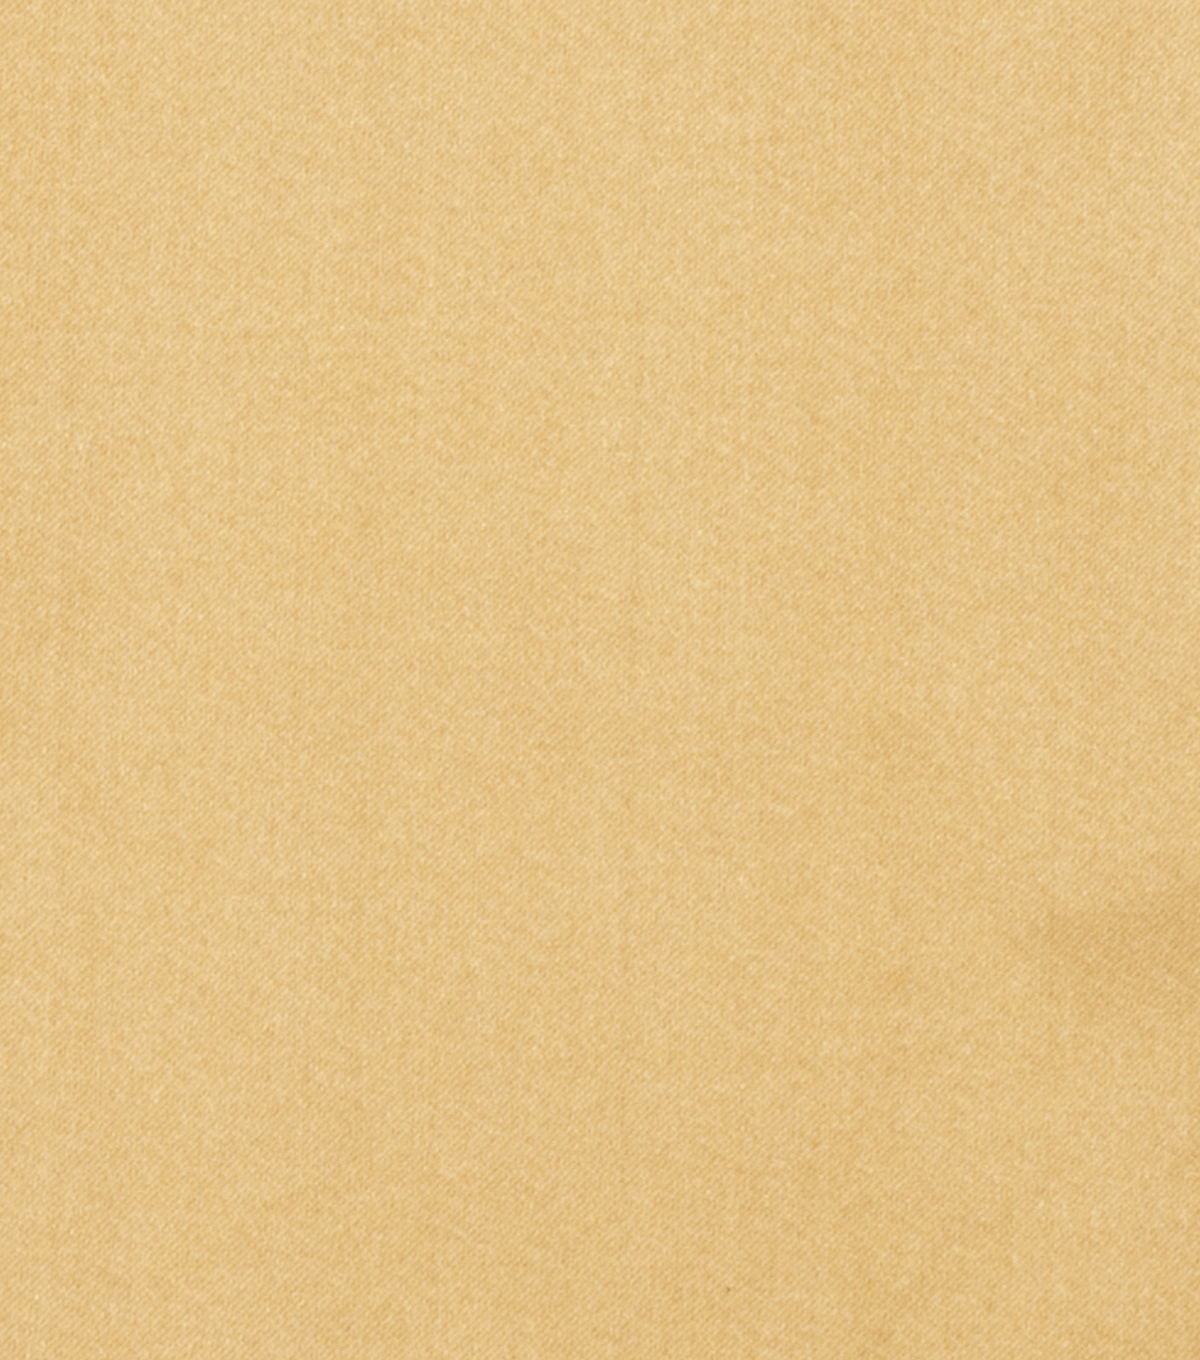 Home Decor 8\u0022x8\u0022 Fabric Swatch-Signature Series Couture Satin Beeswax